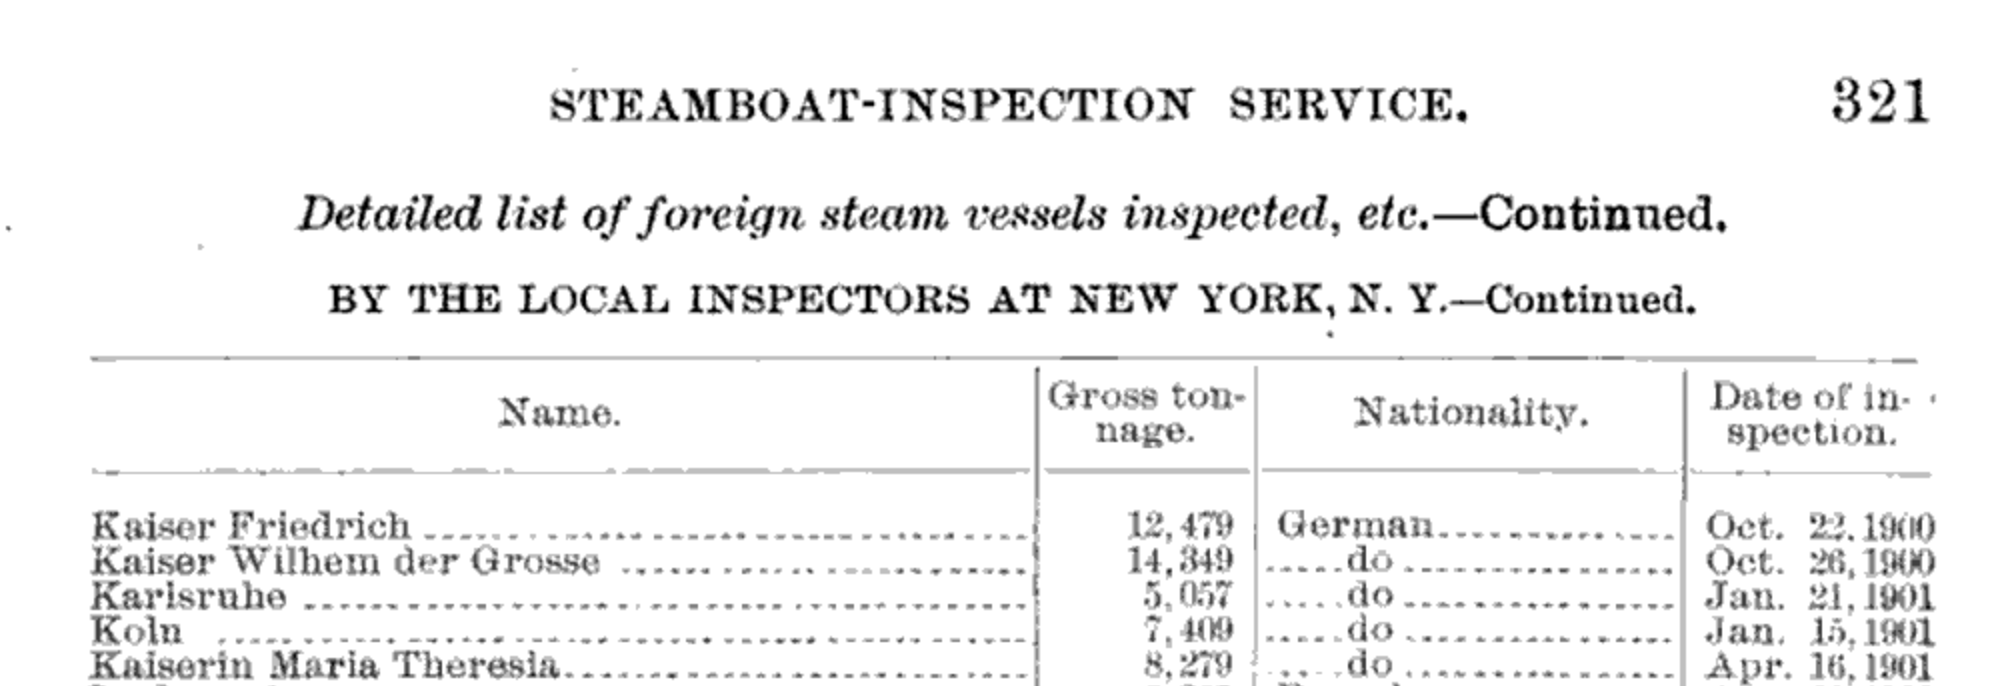 Excerpt From Report of the Supervising Inspector-General, U.S. Steamboat-Inspection Service, June 30, 1901